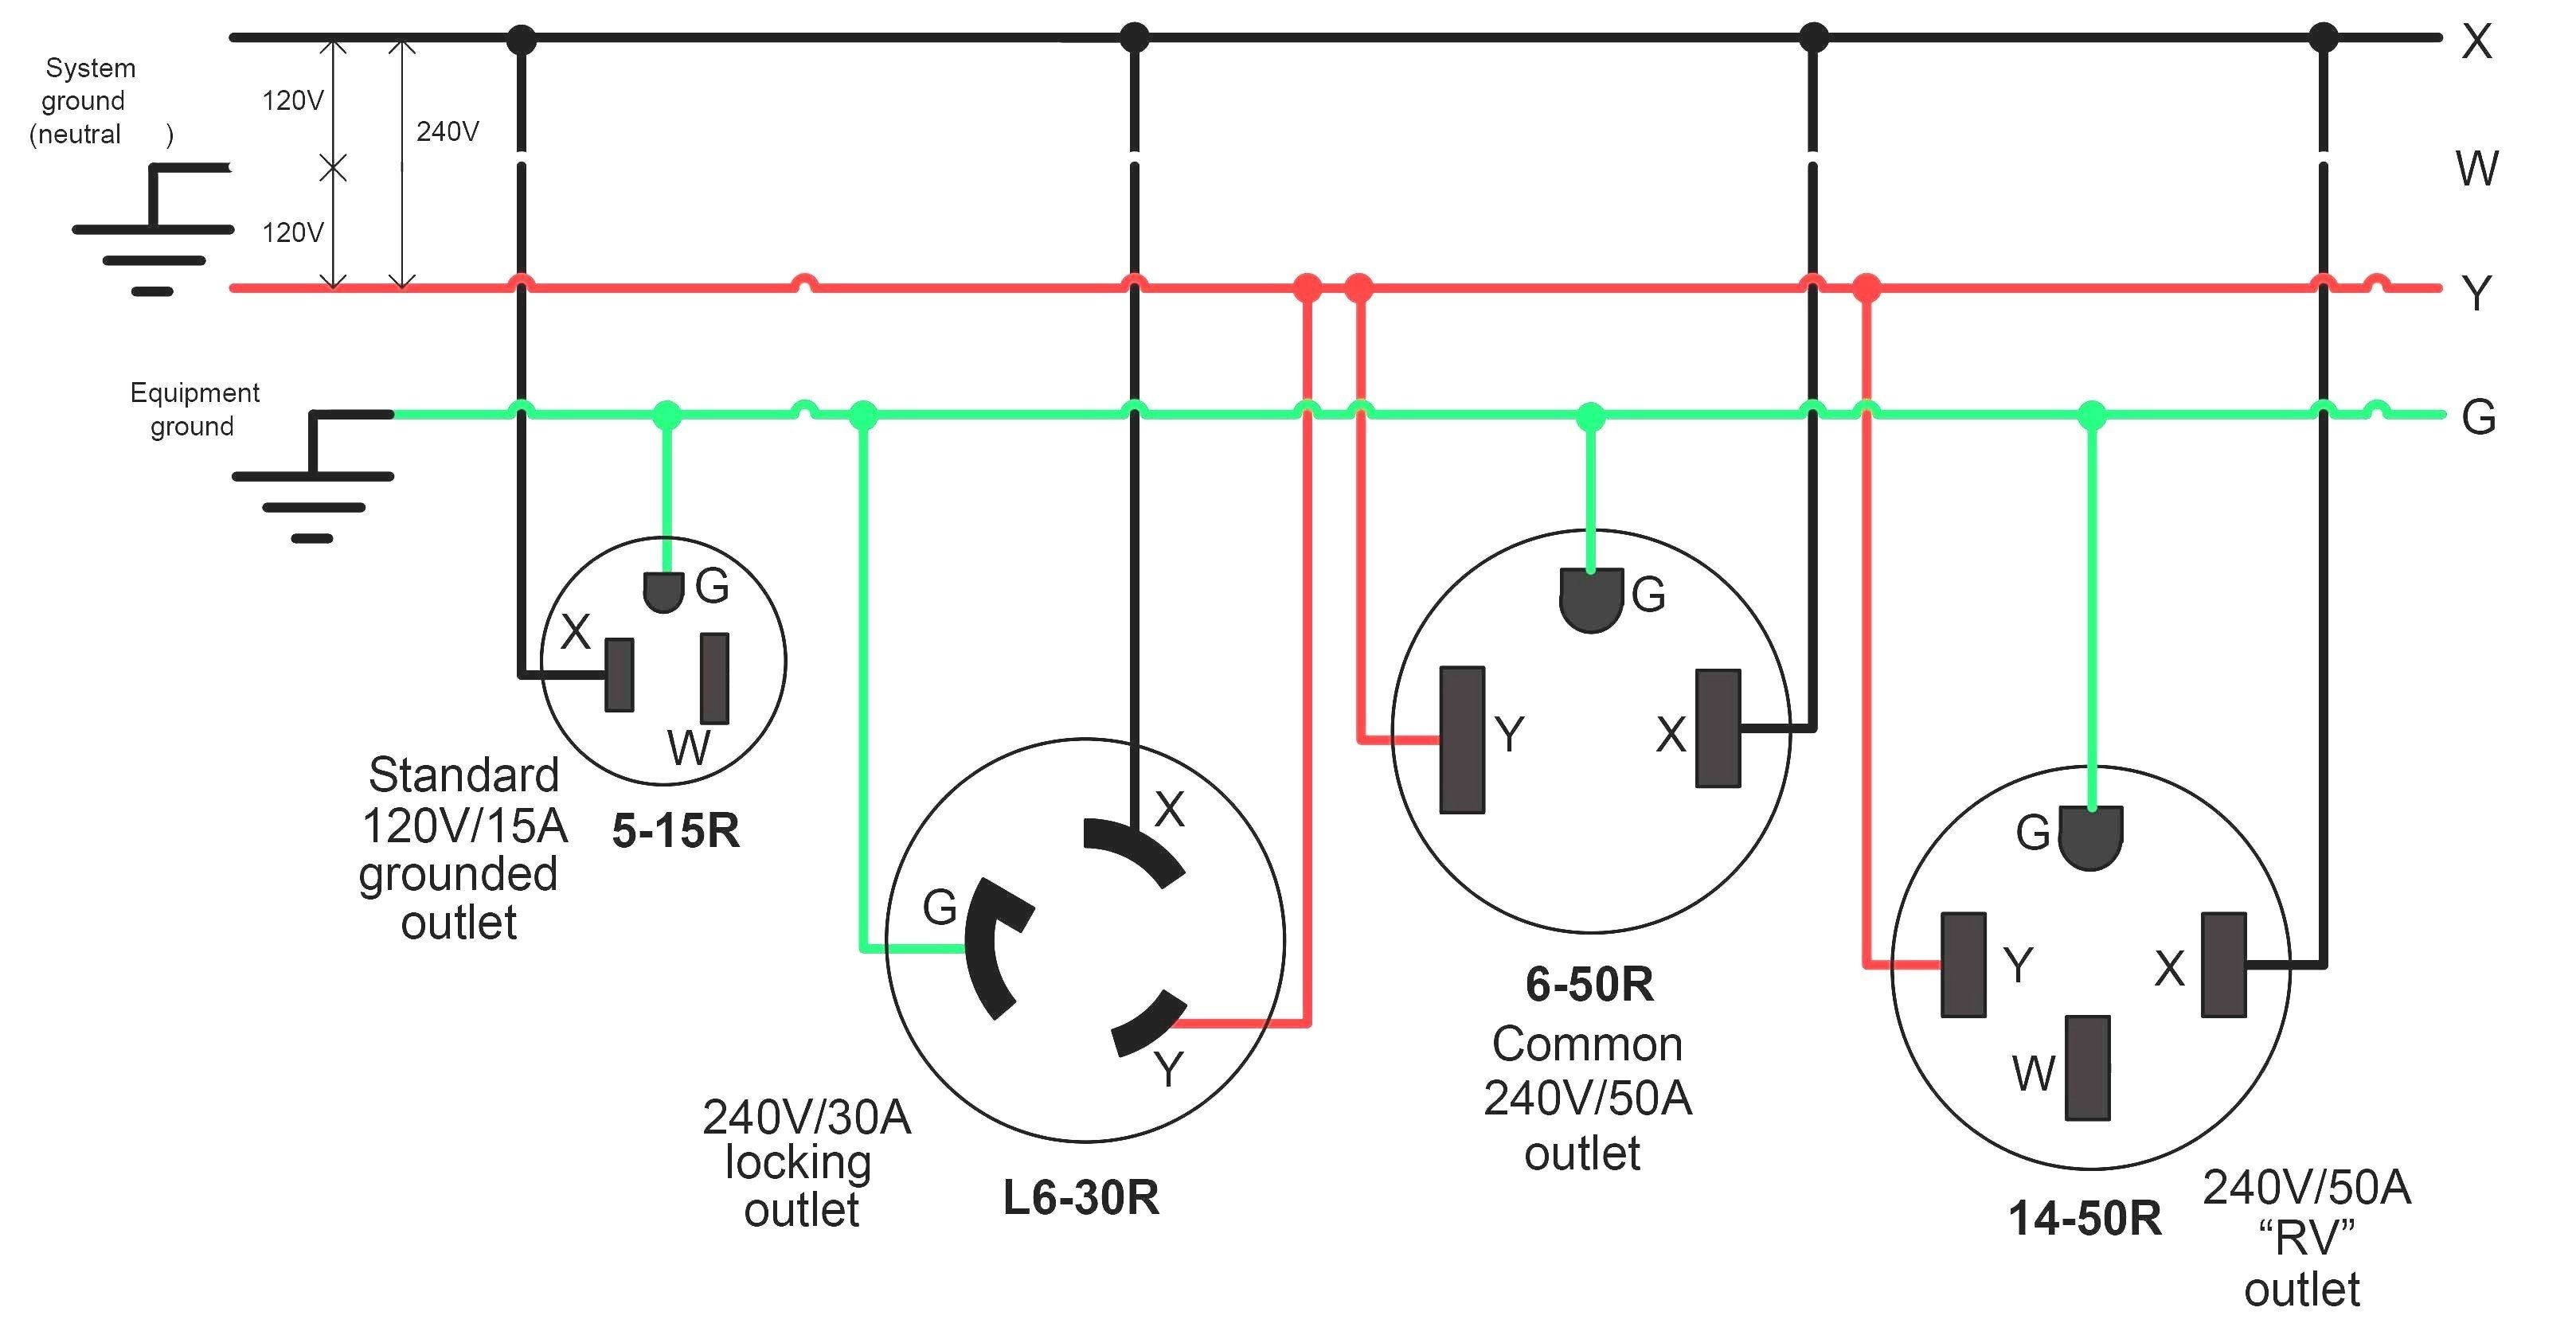 Nema L6 30p Receptacle Wiring - Wiring Diagram Ops Nema Plug Wiring Diagram on